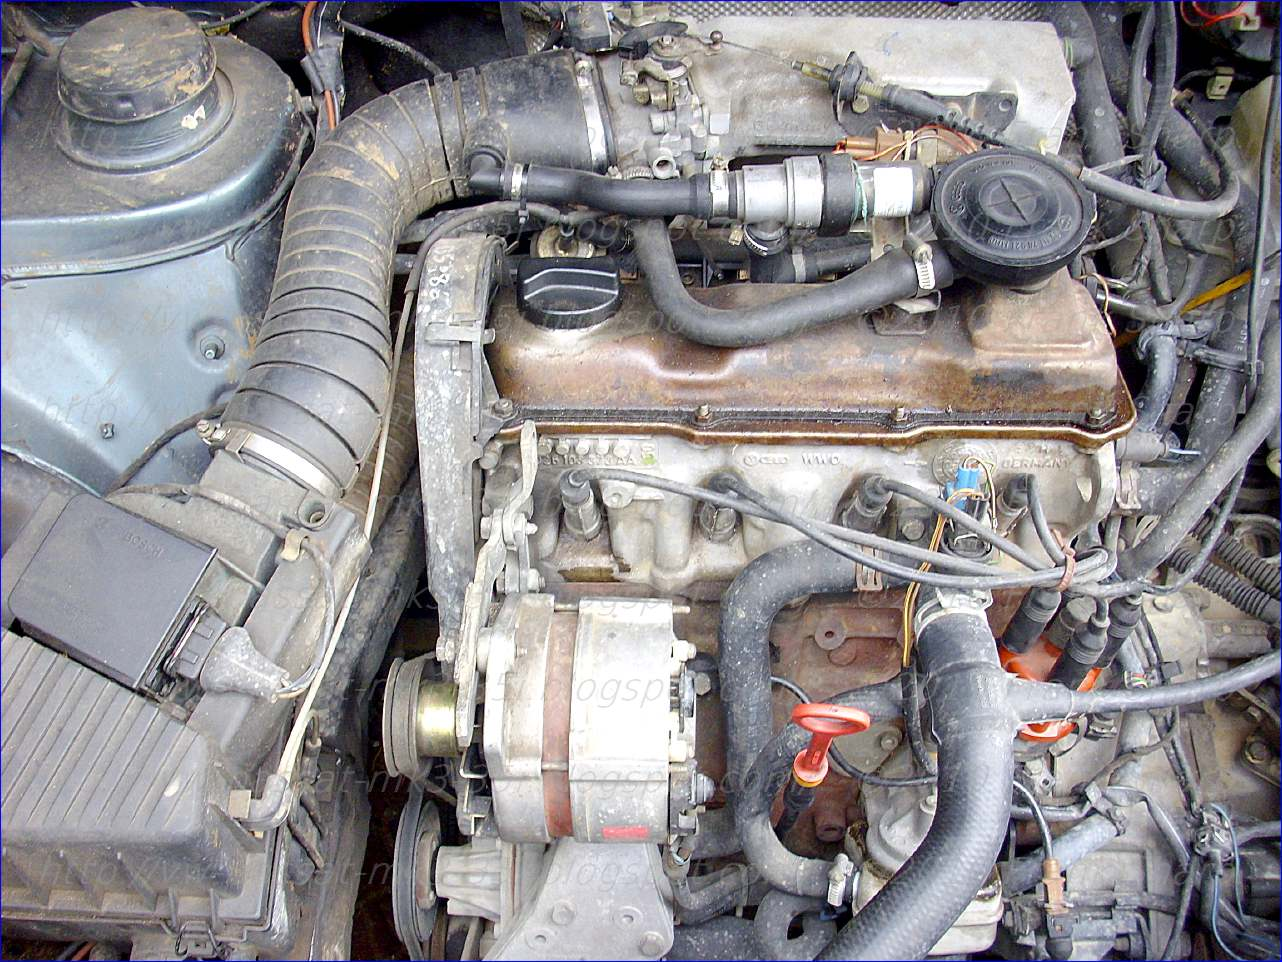 Volkswagen Jetta 2 0 Engine Diagram Cold Opinions About 2002 Passat Control Management Rh Vw Mk3 35i Blogspot Com 2000 Vr6 2001